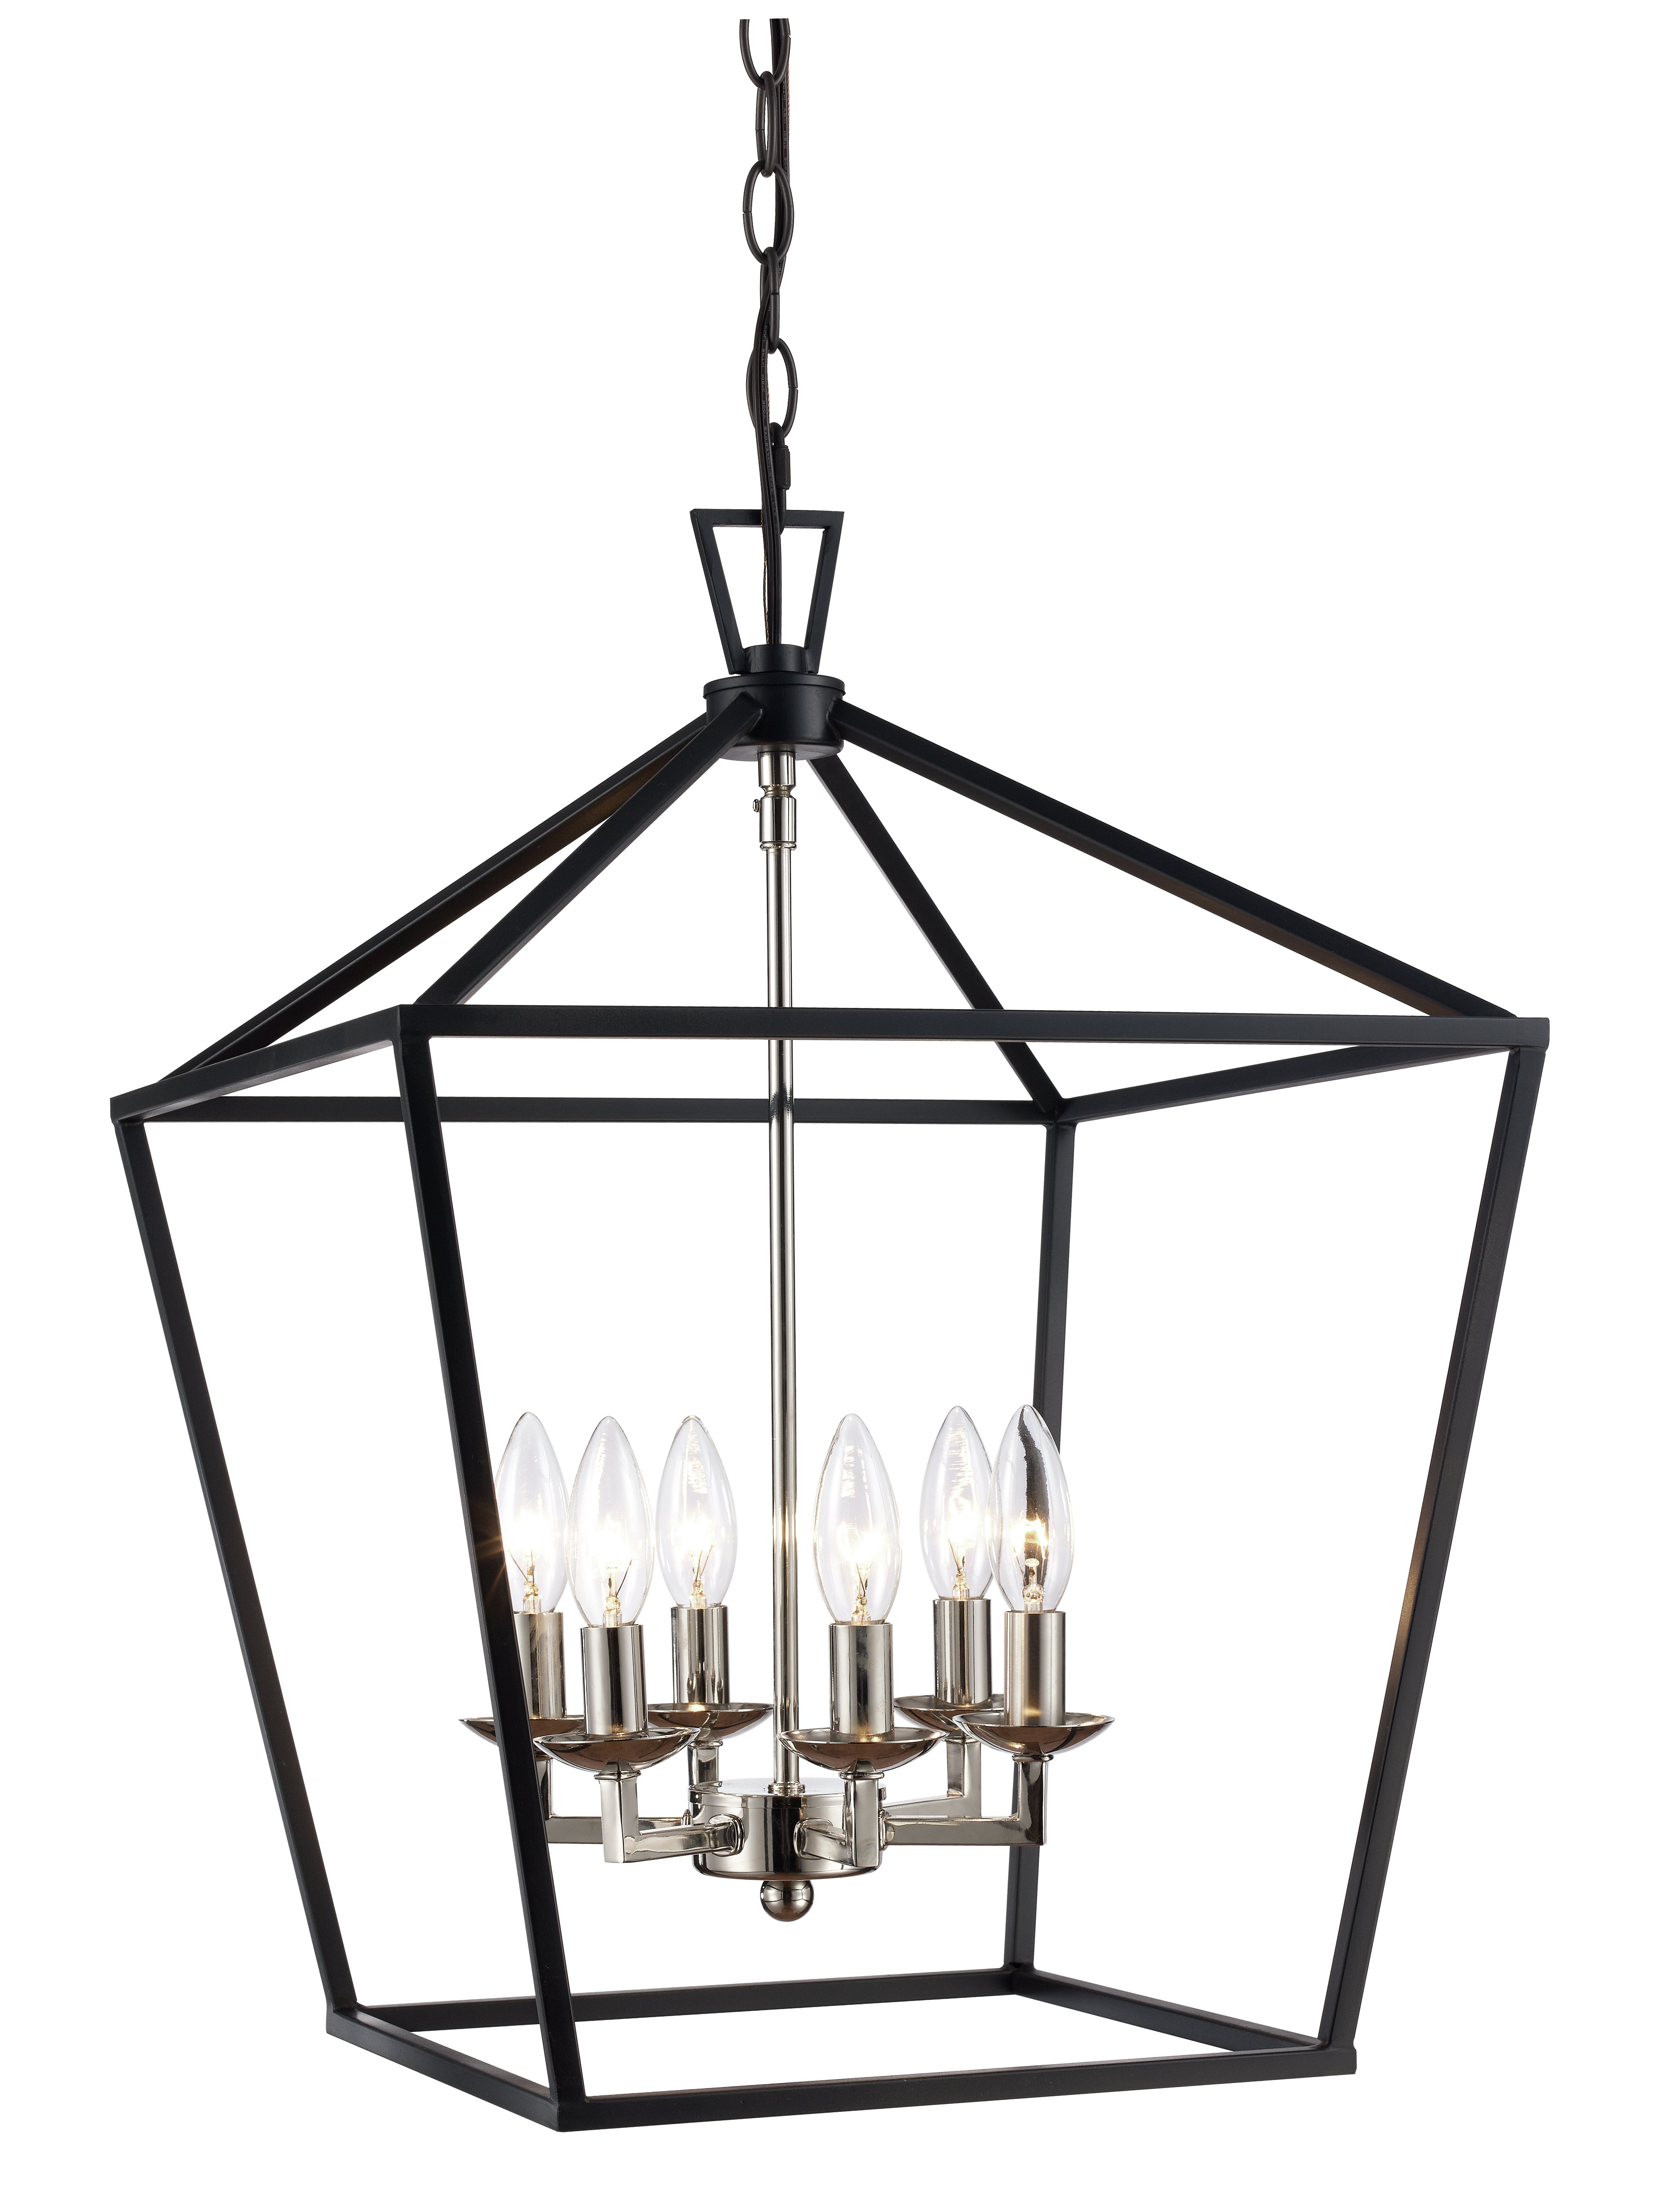 Most Recently Released Carmen 6 Light Lantern Geometric Pendants Throughout Carmen 6 Light Lantern Geometric Pendant (View 17 of 25)